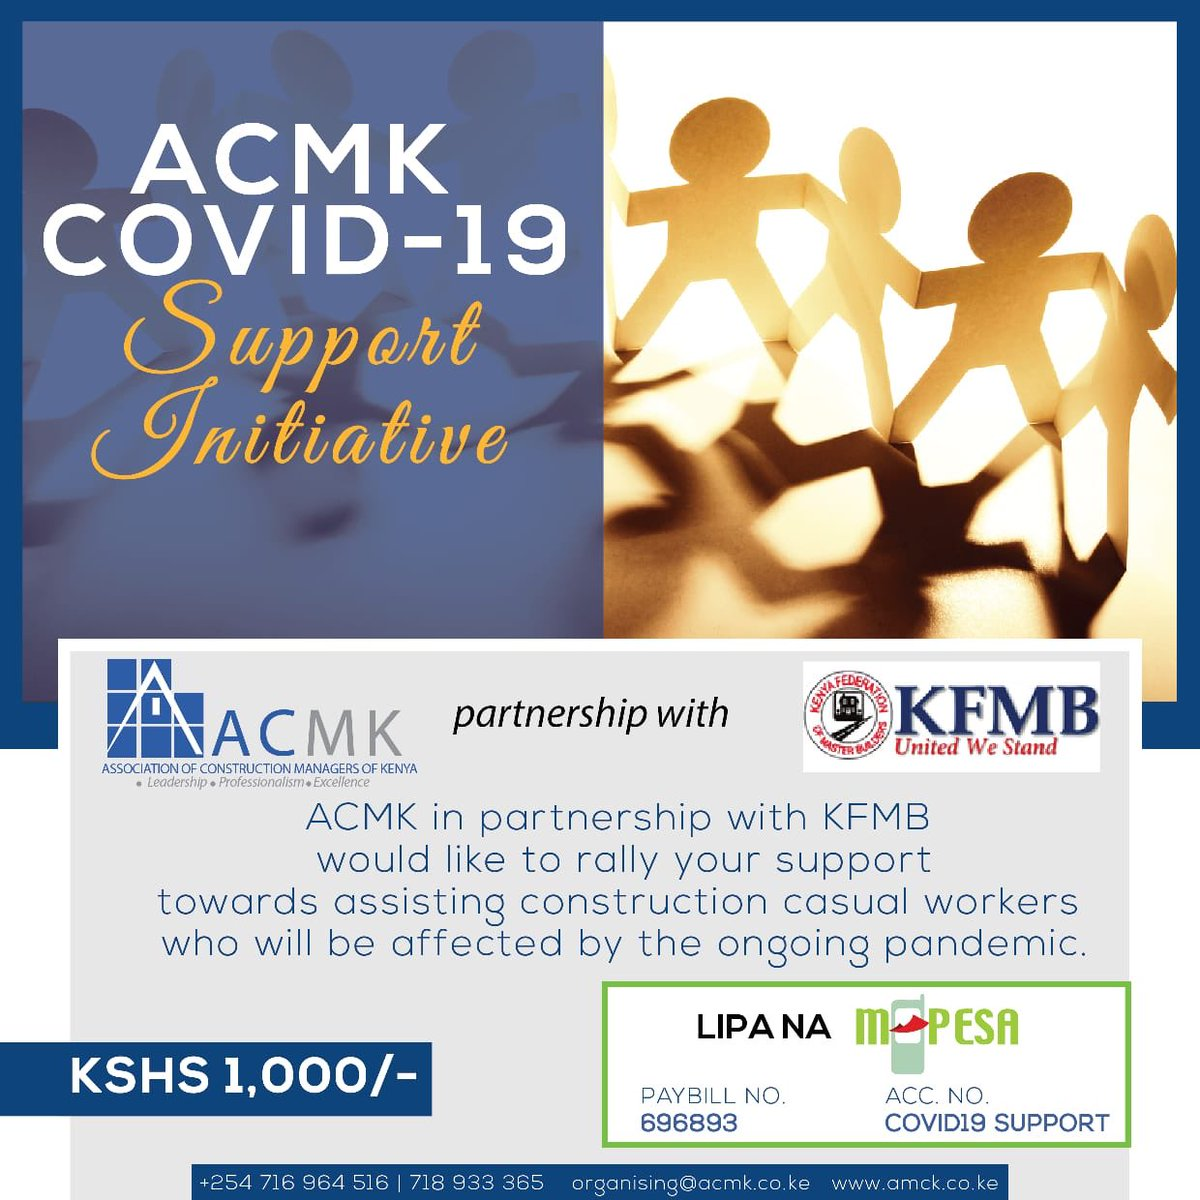 60% of our construction workforce are informal.COVID-19 has and continues to affect many ongoing site construction works.Consequently we have a large number of casual workers who are currently unable to fend for their households.This number may augment in the coming days. 1/1 https://t.co/Rq4T9NyX4u